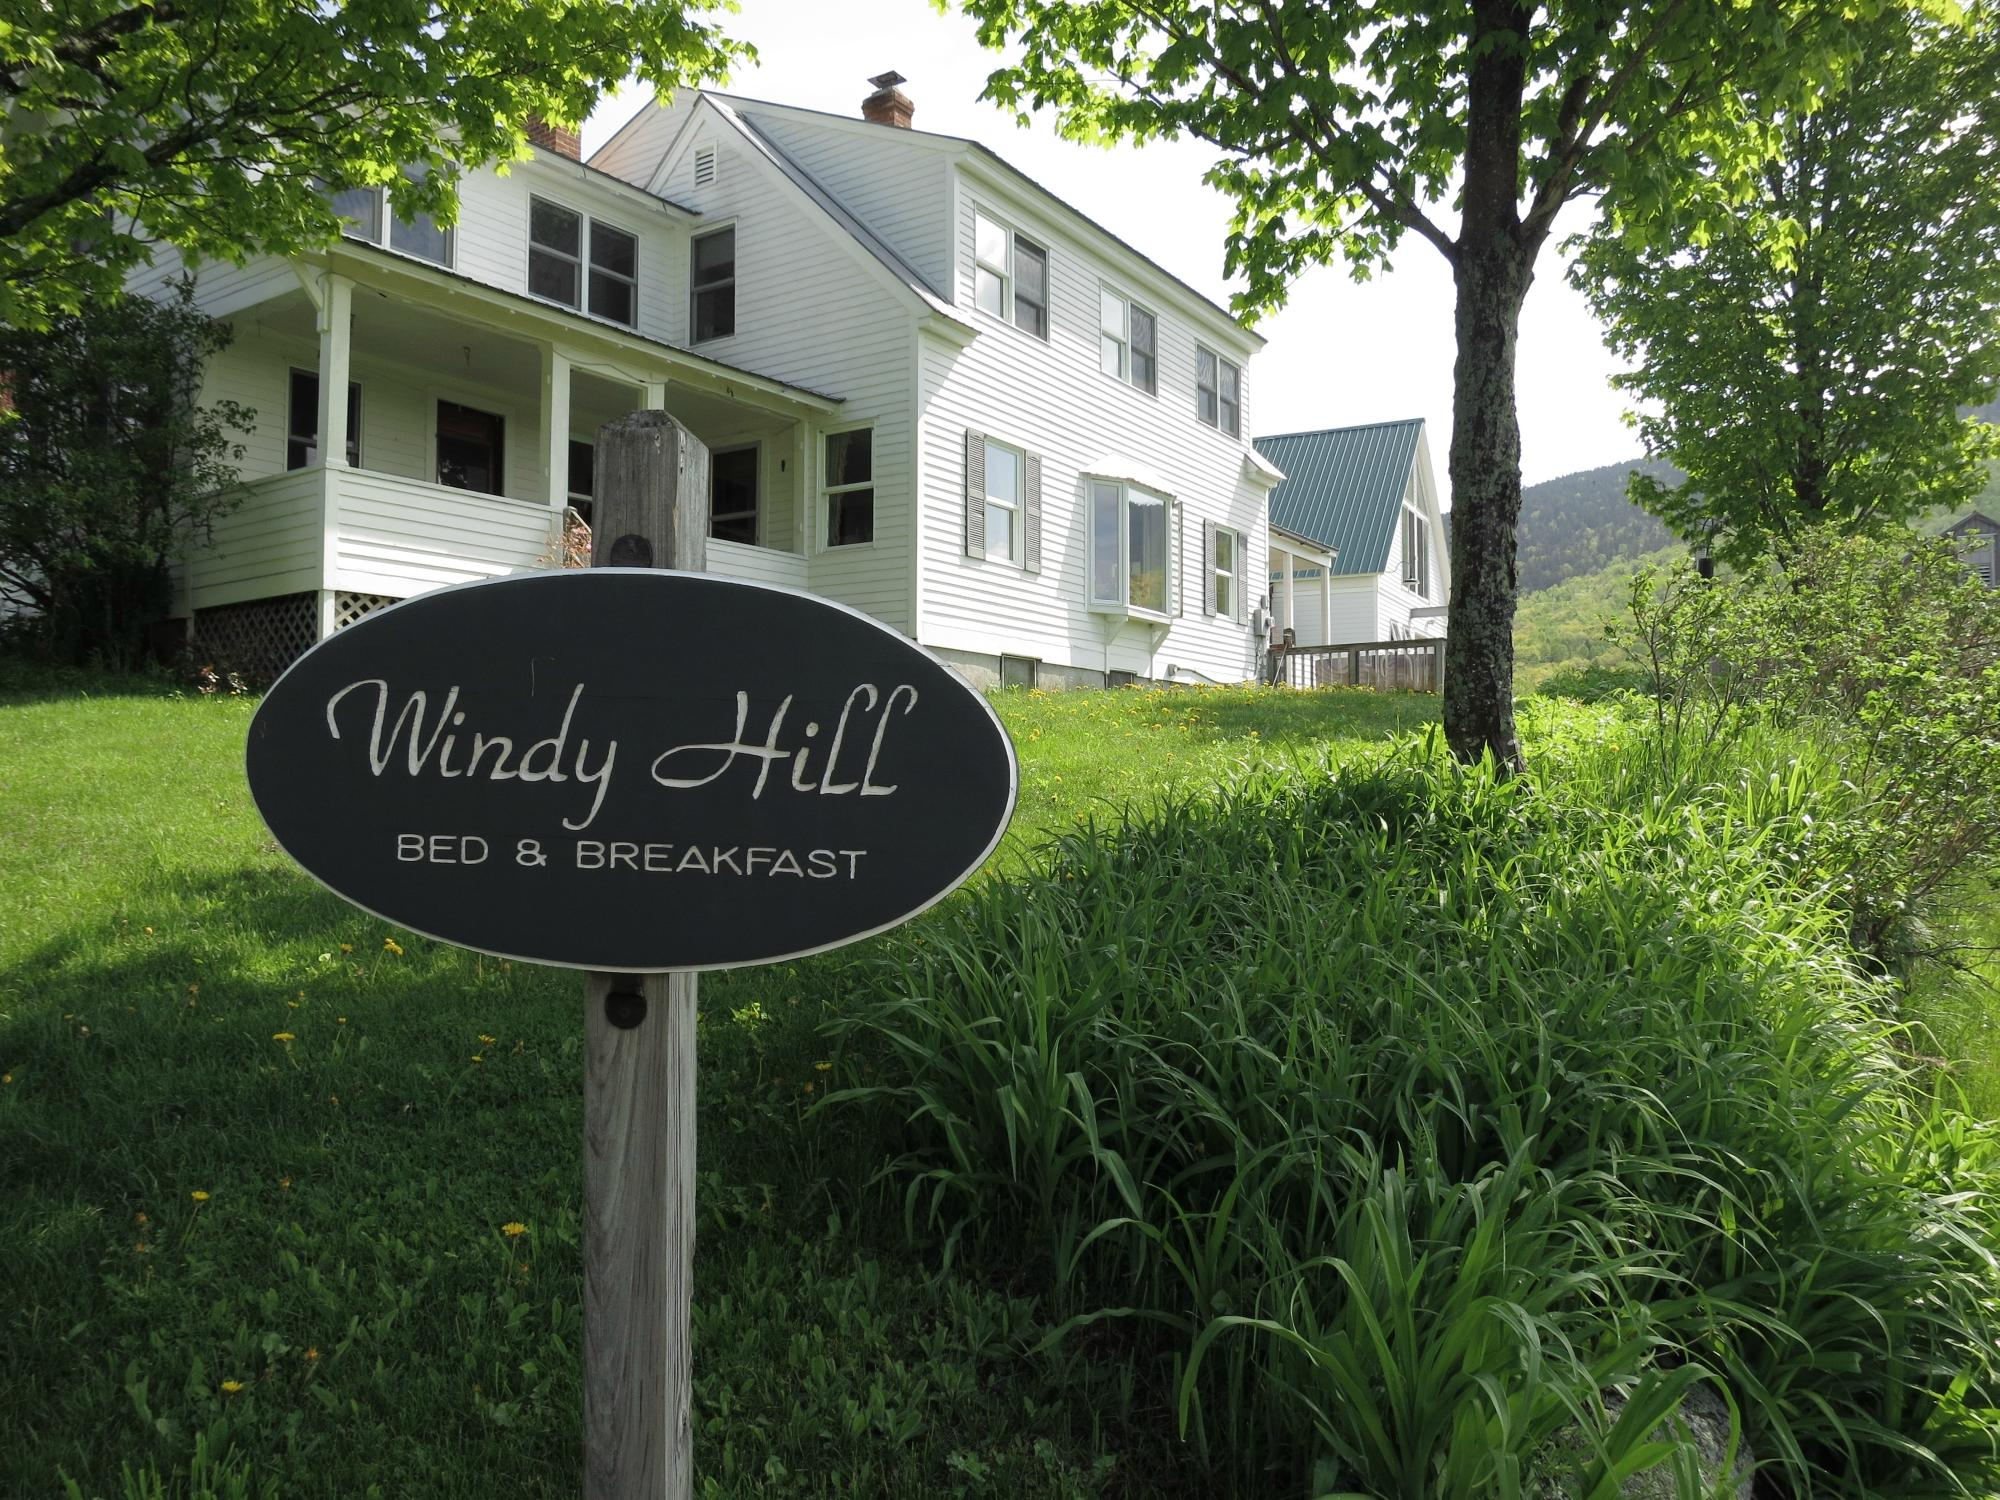 ‪Windy Hill Bed & Breakfast‬